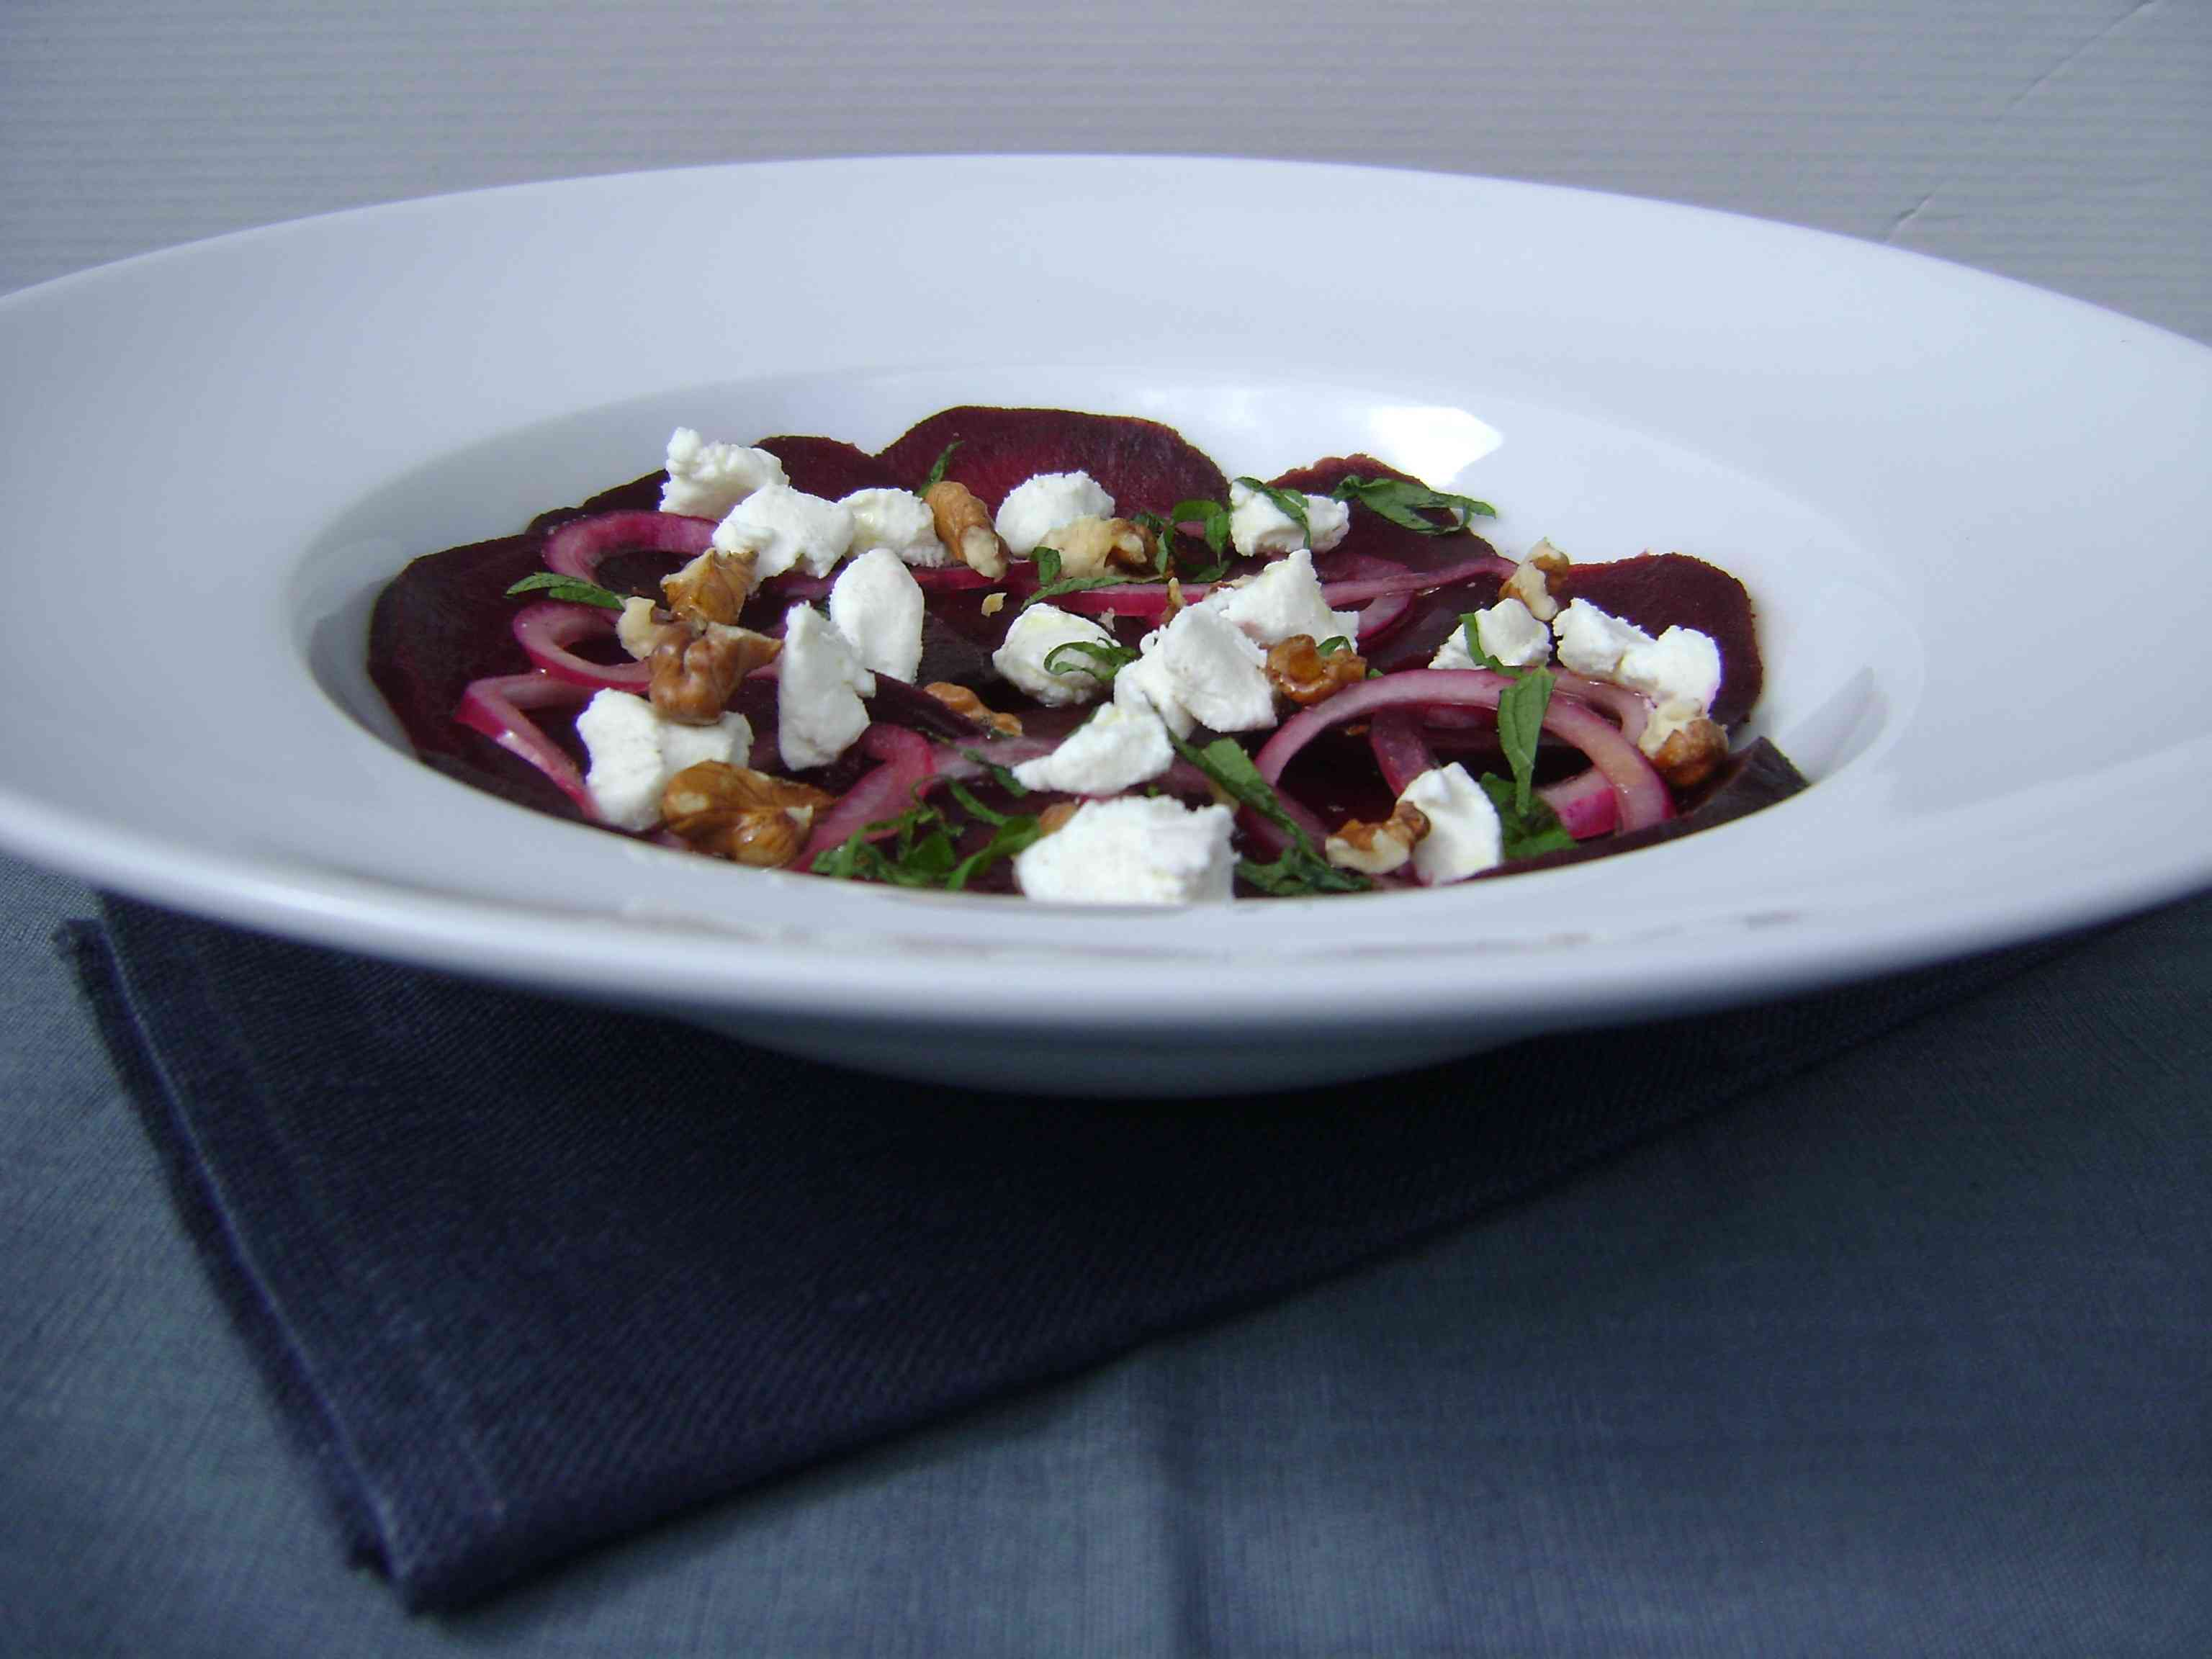 Beet Salad with Chèvre and Mint